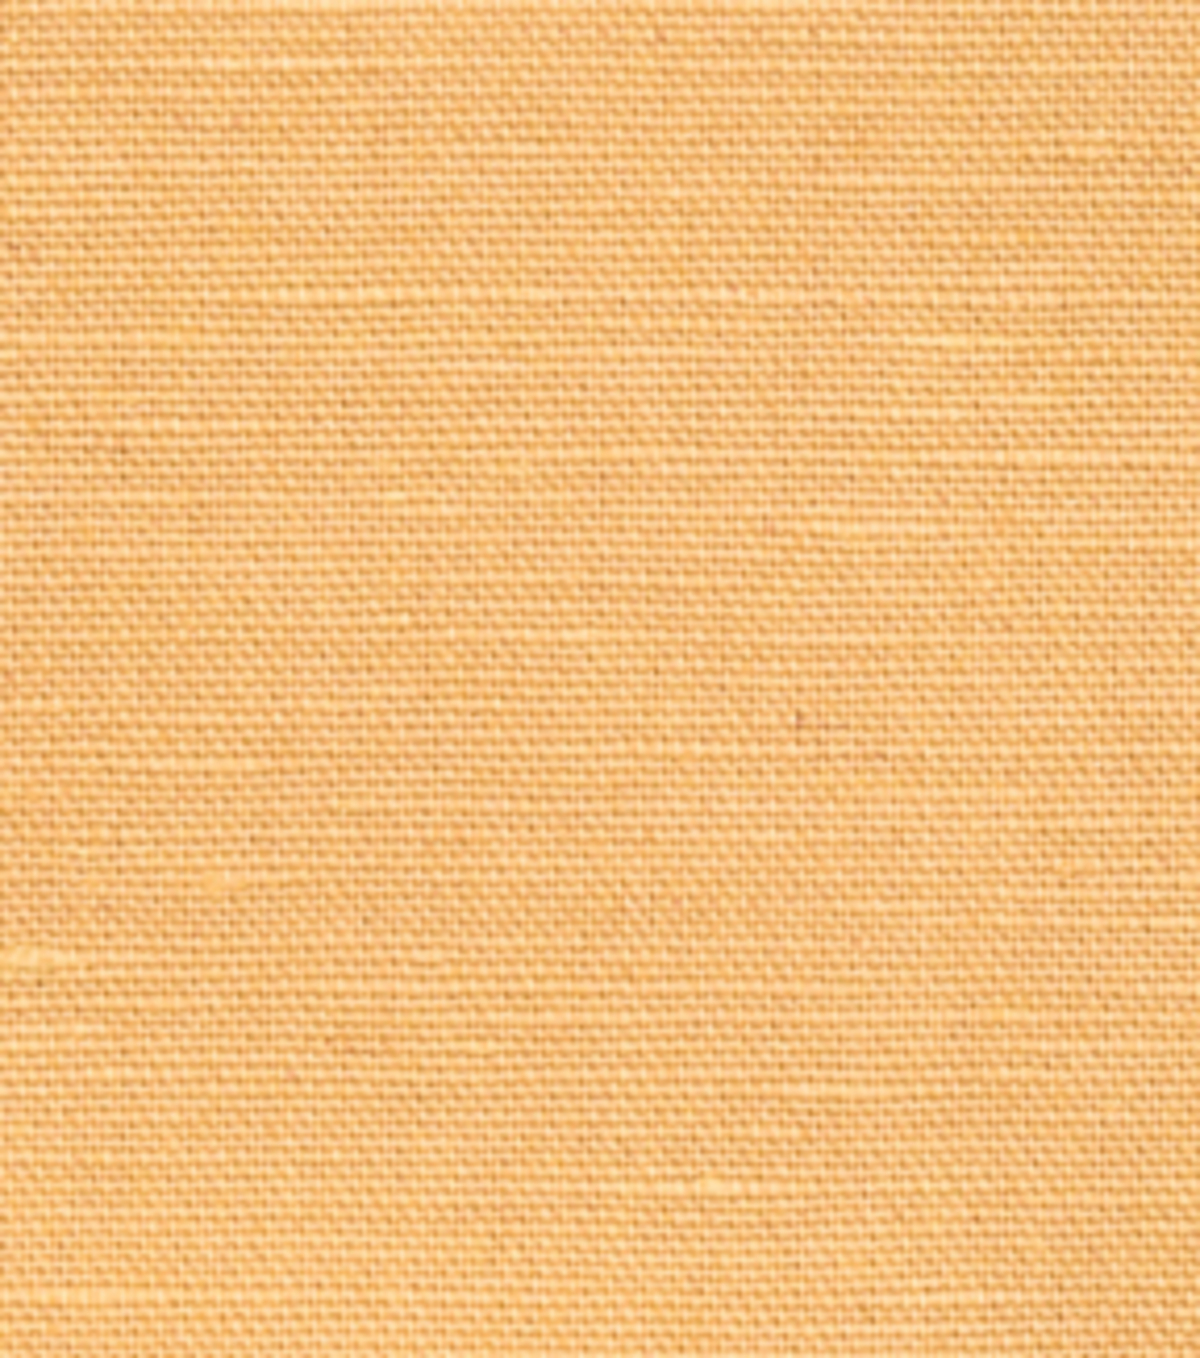 Home Decor 8\u0022x8\u0022 Fabric Swatch-Signature Series Linen-Cotton Biscuit